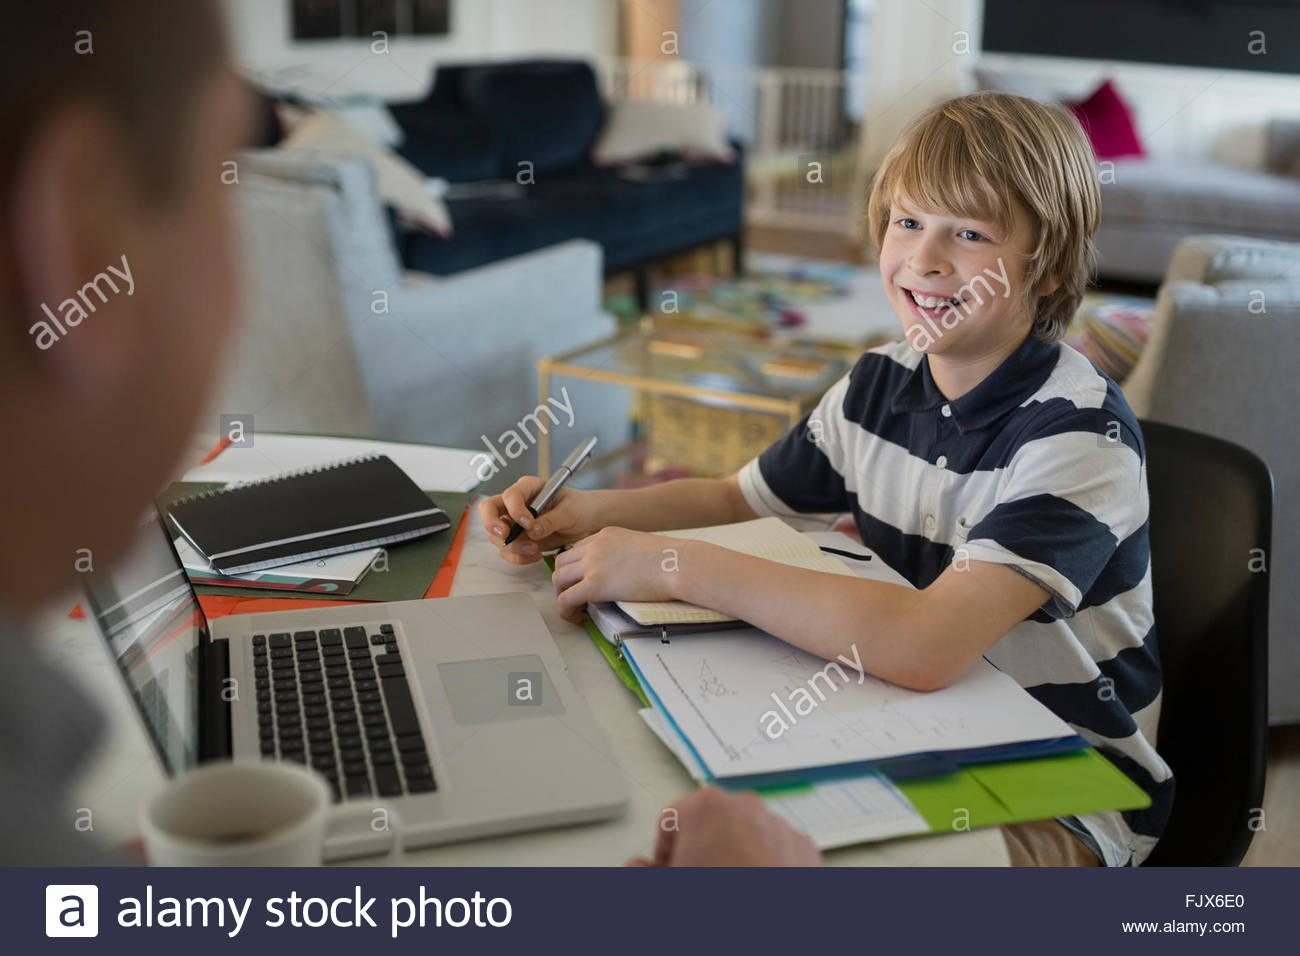 Son doing homework smiling at father - Stock Image